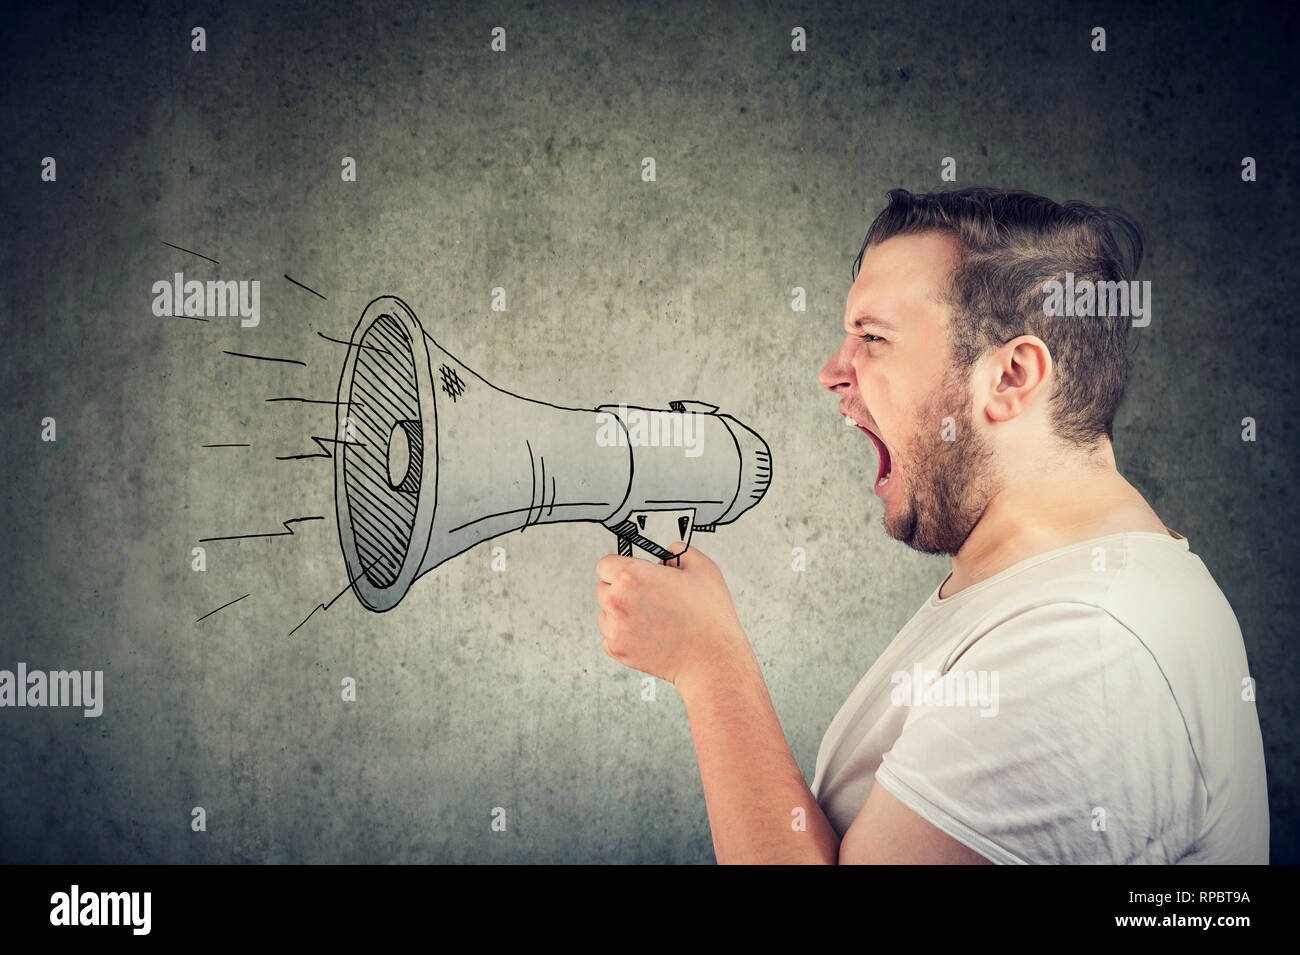 Young man screaming in loudspeaker making an announcement - Stock Image